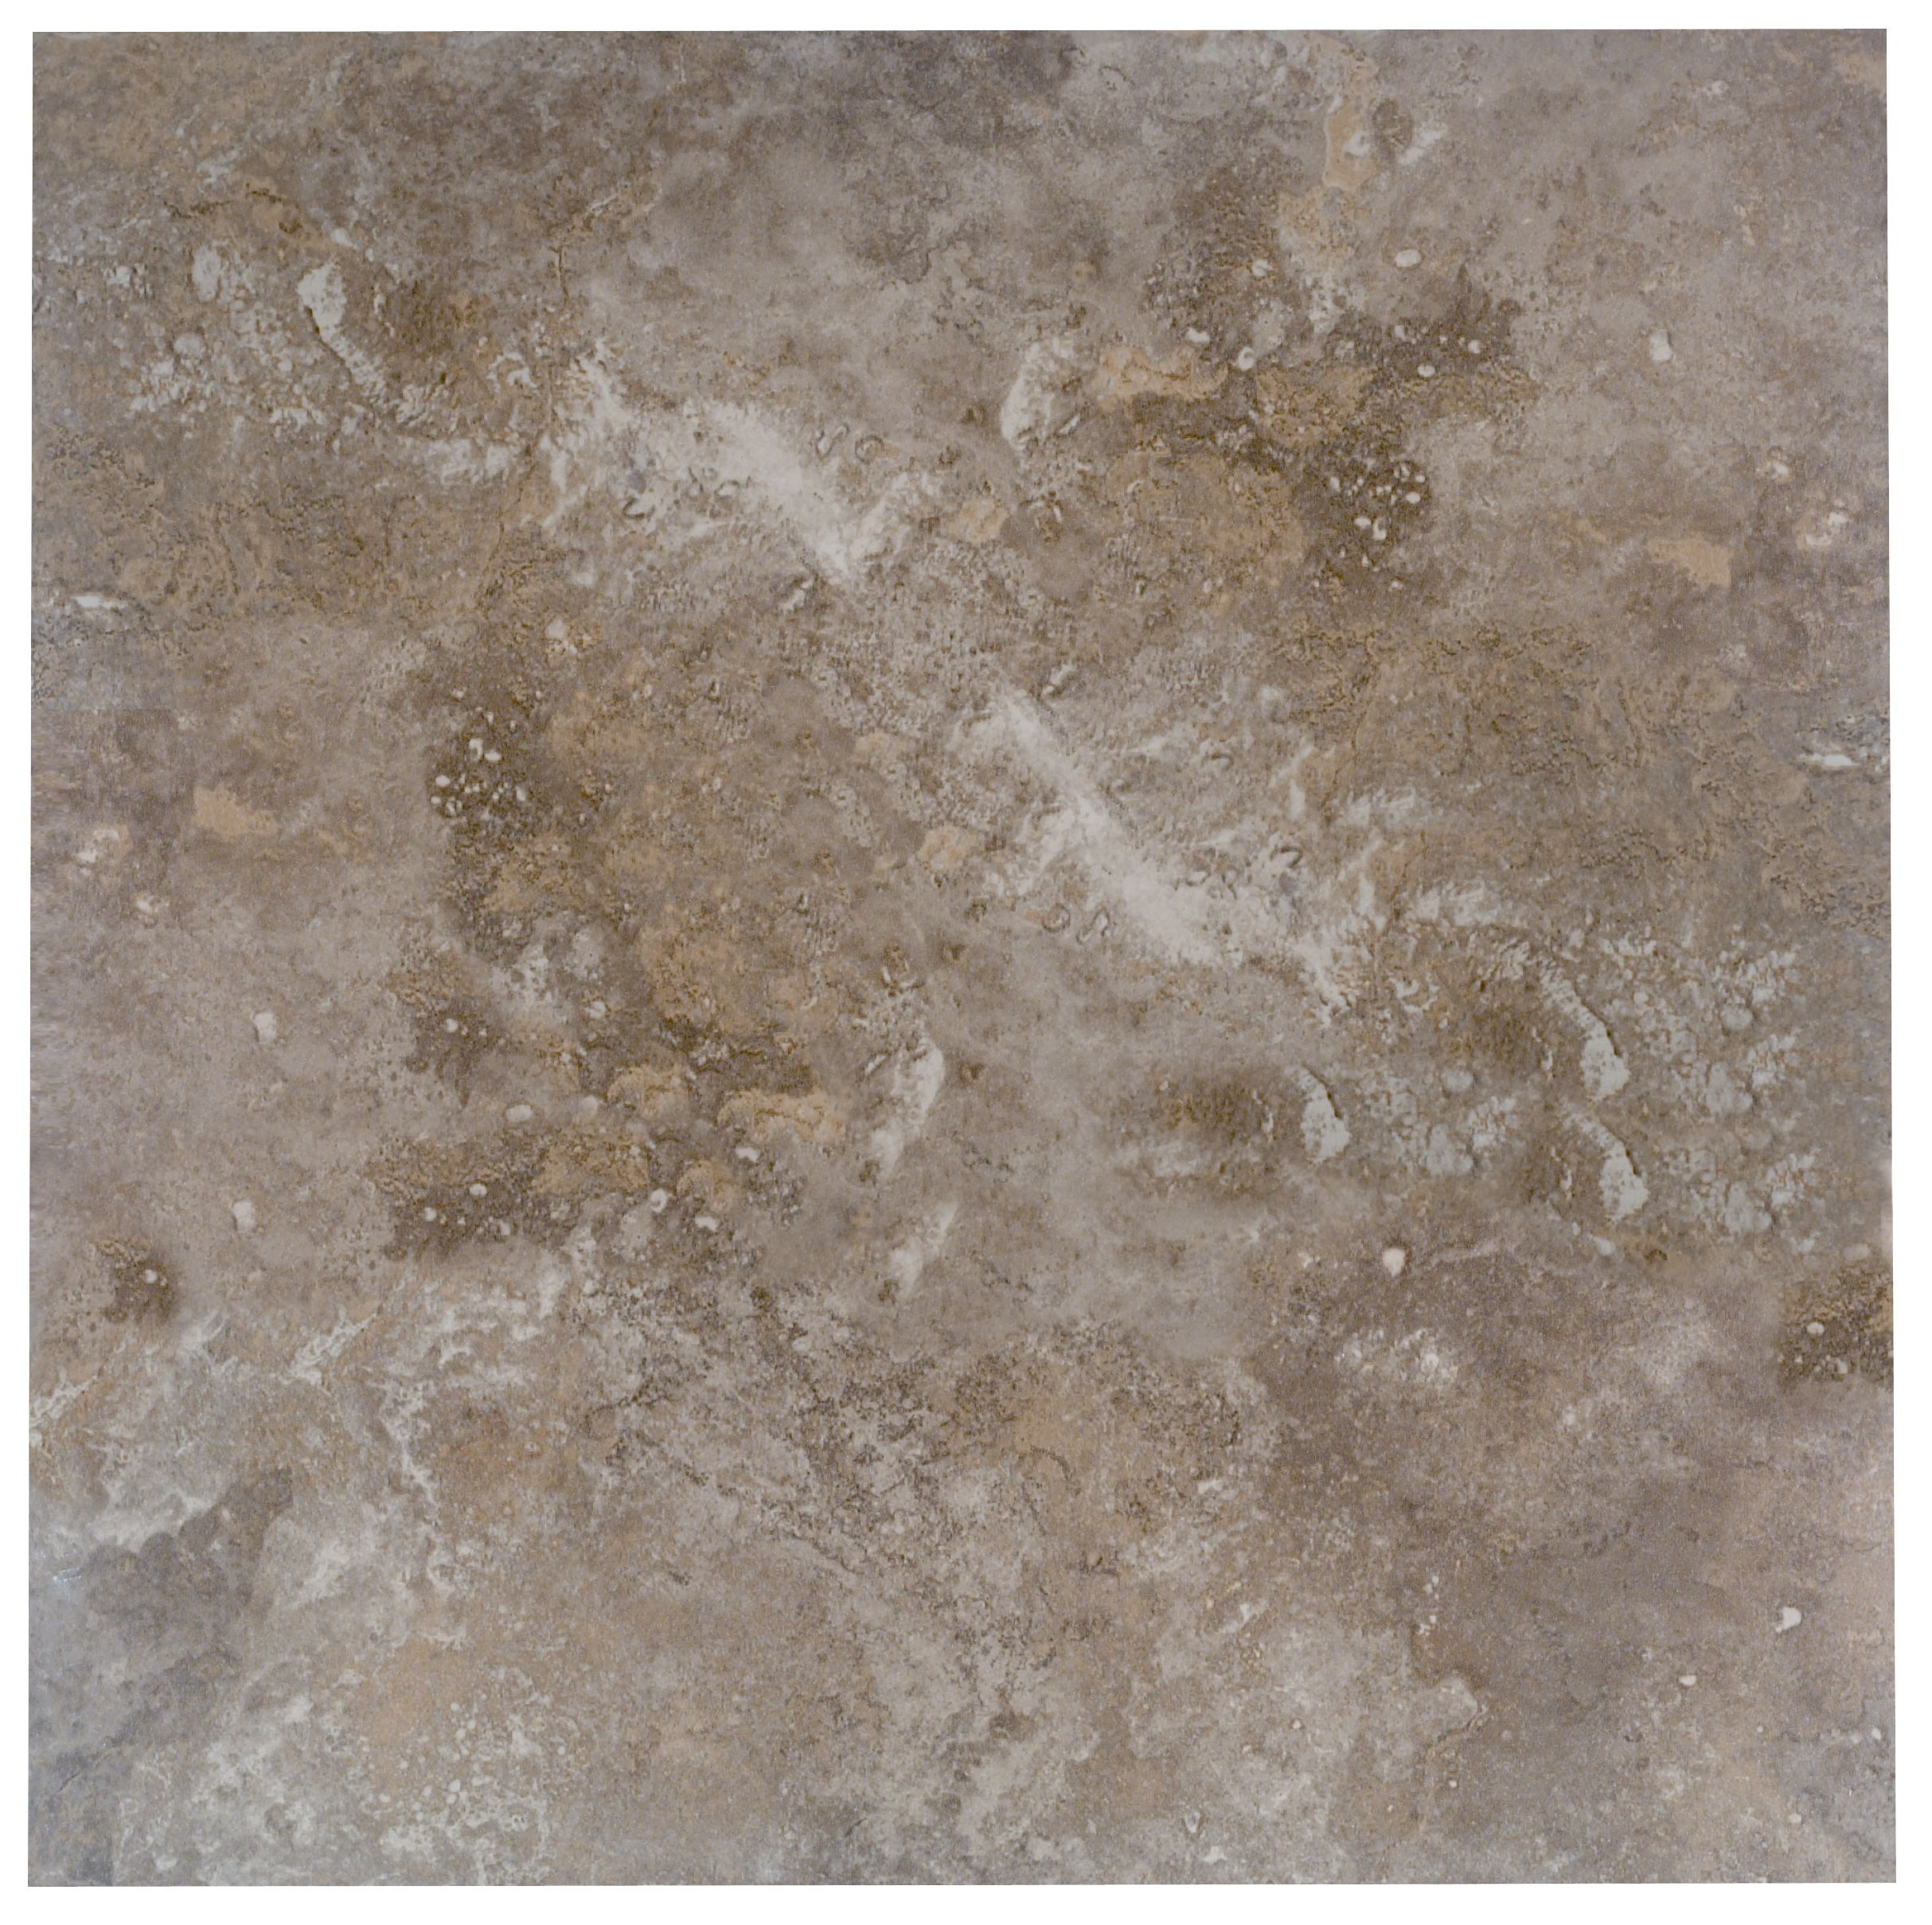 Castle travertine coffee stone effect ceramic wall floor tile castle travertine coffee stone effect ceramic wall floor tile pack of 5 l450mm w450mm doublecrazyfo Choice Image